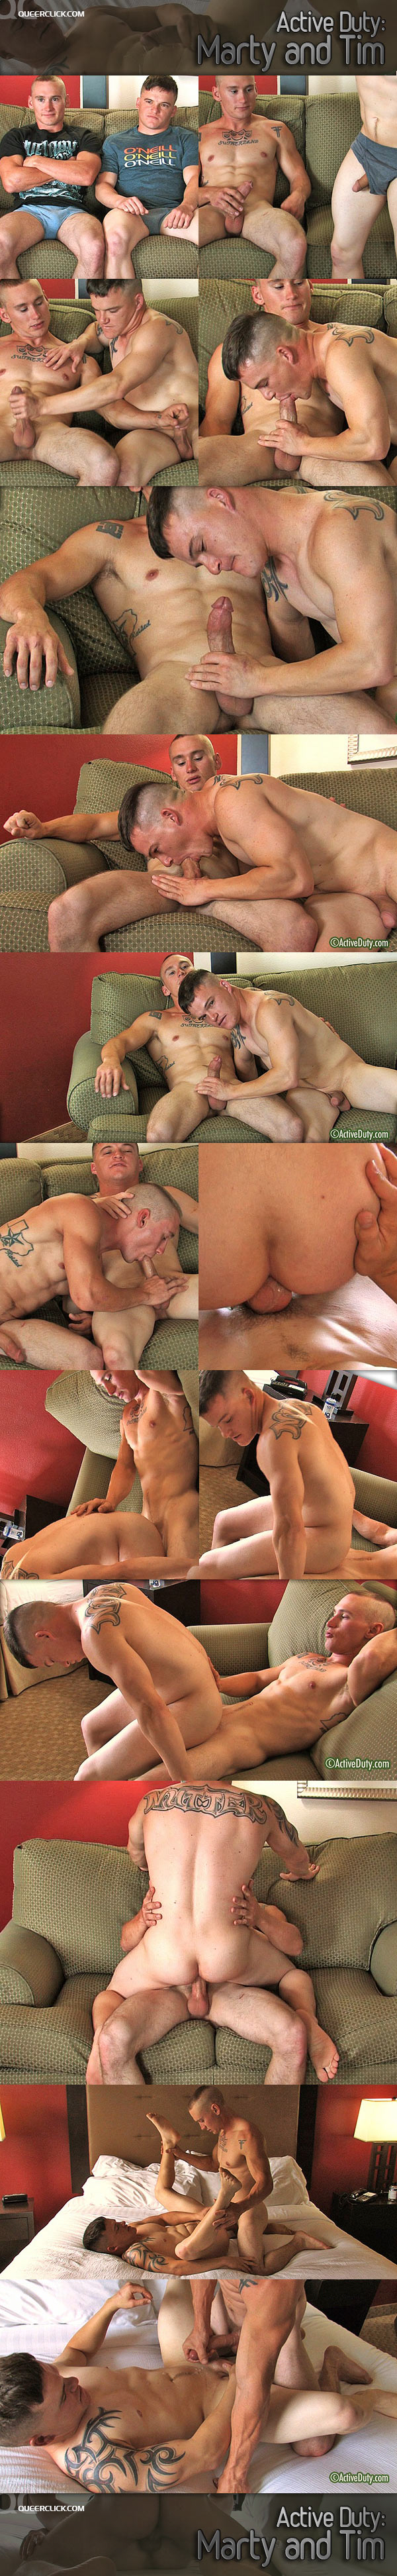 Activeduty ivan james fucked by newbie stud 5